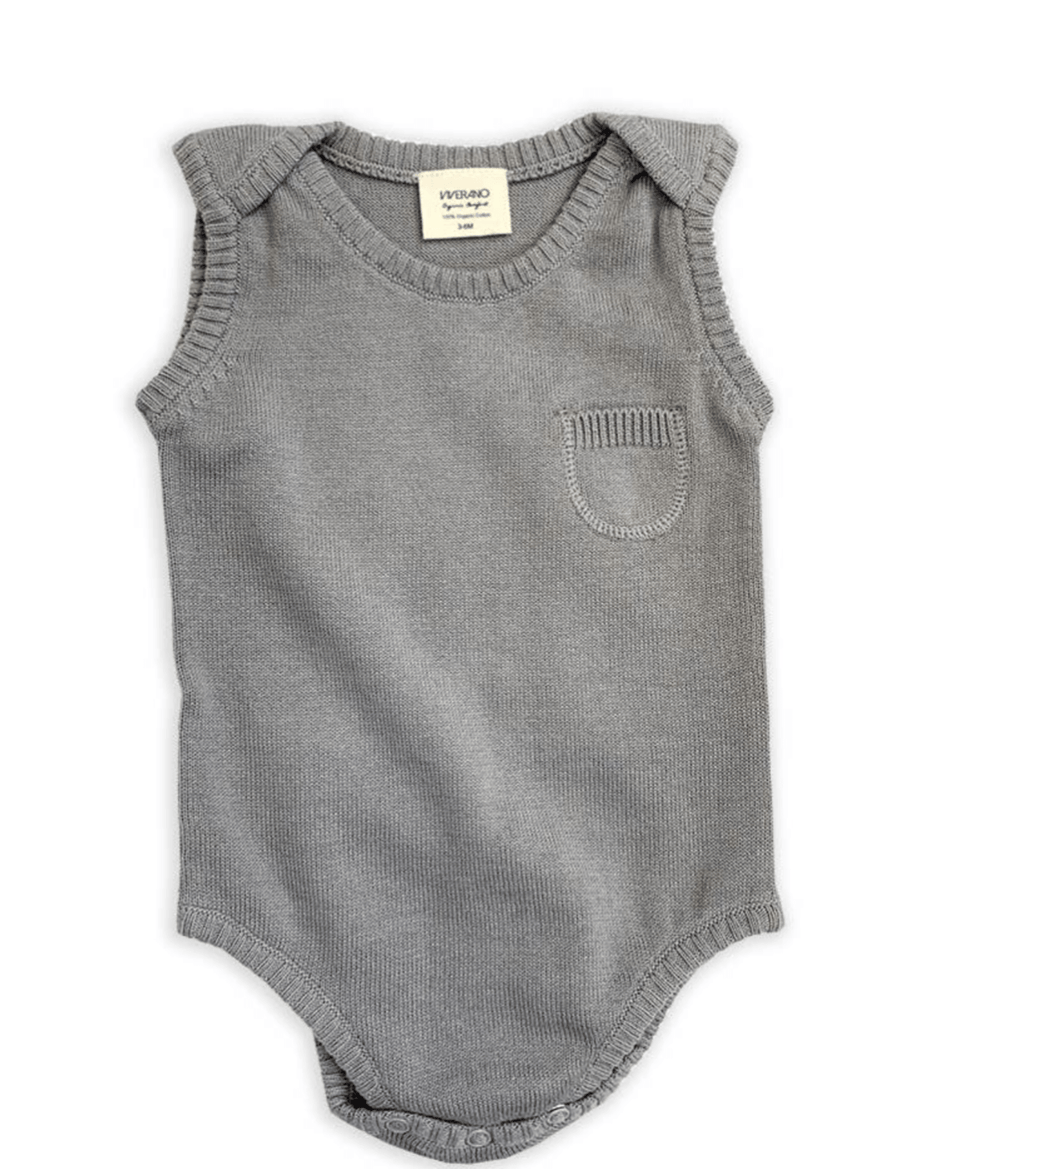 Organic Knitted Sleeveless Bodysuit - Gray - Make Me Yours Toy Studio